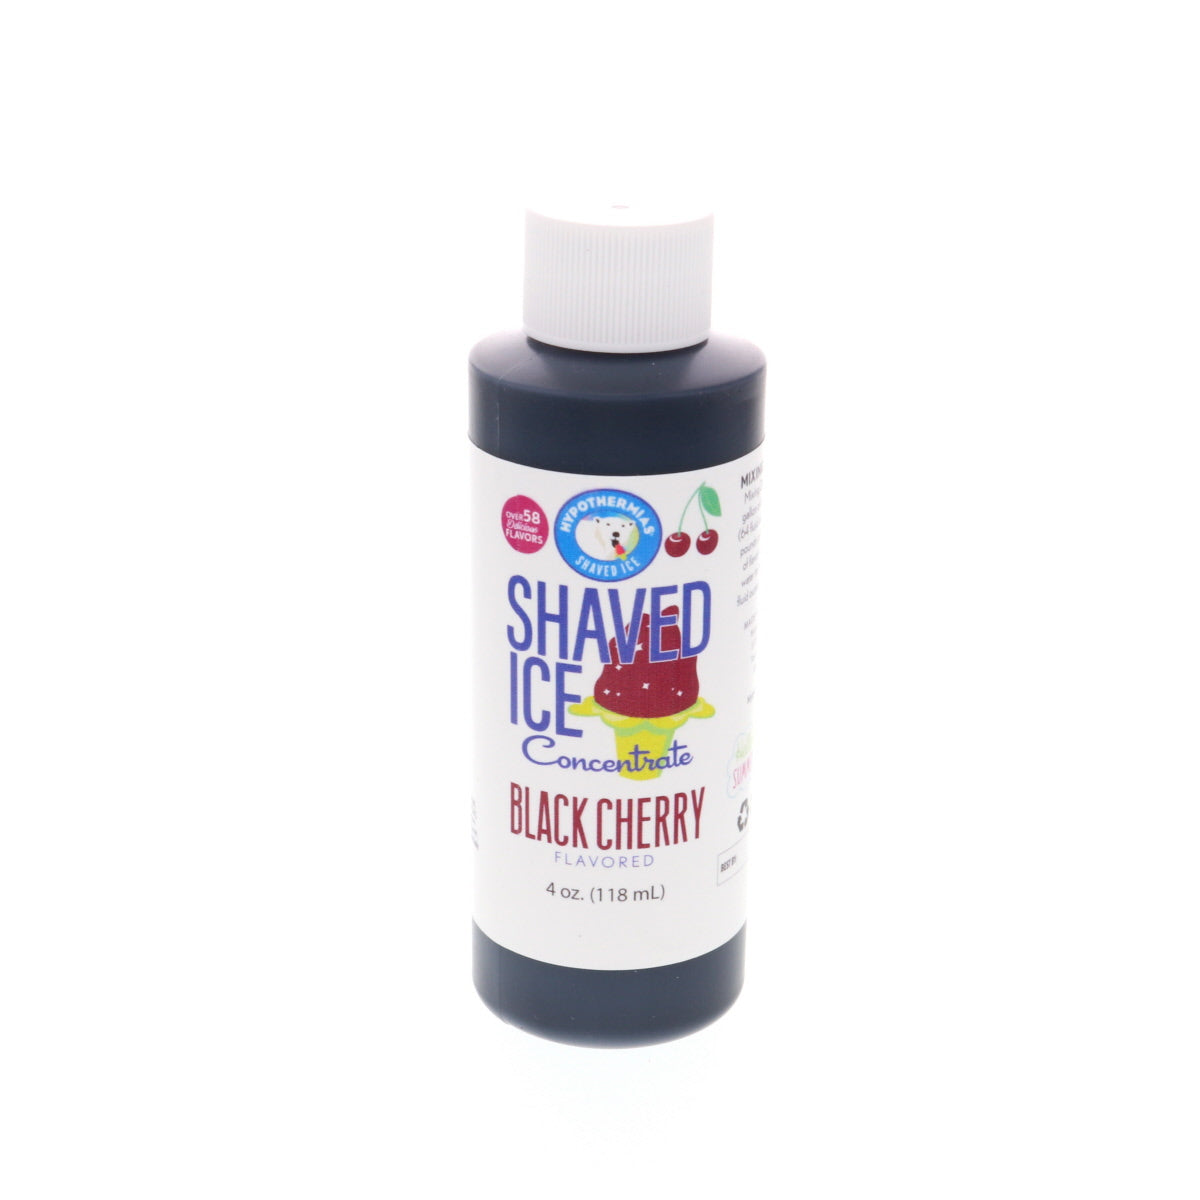 Shaved ice flavor syrup concentrate black cherry 4 Fl oz